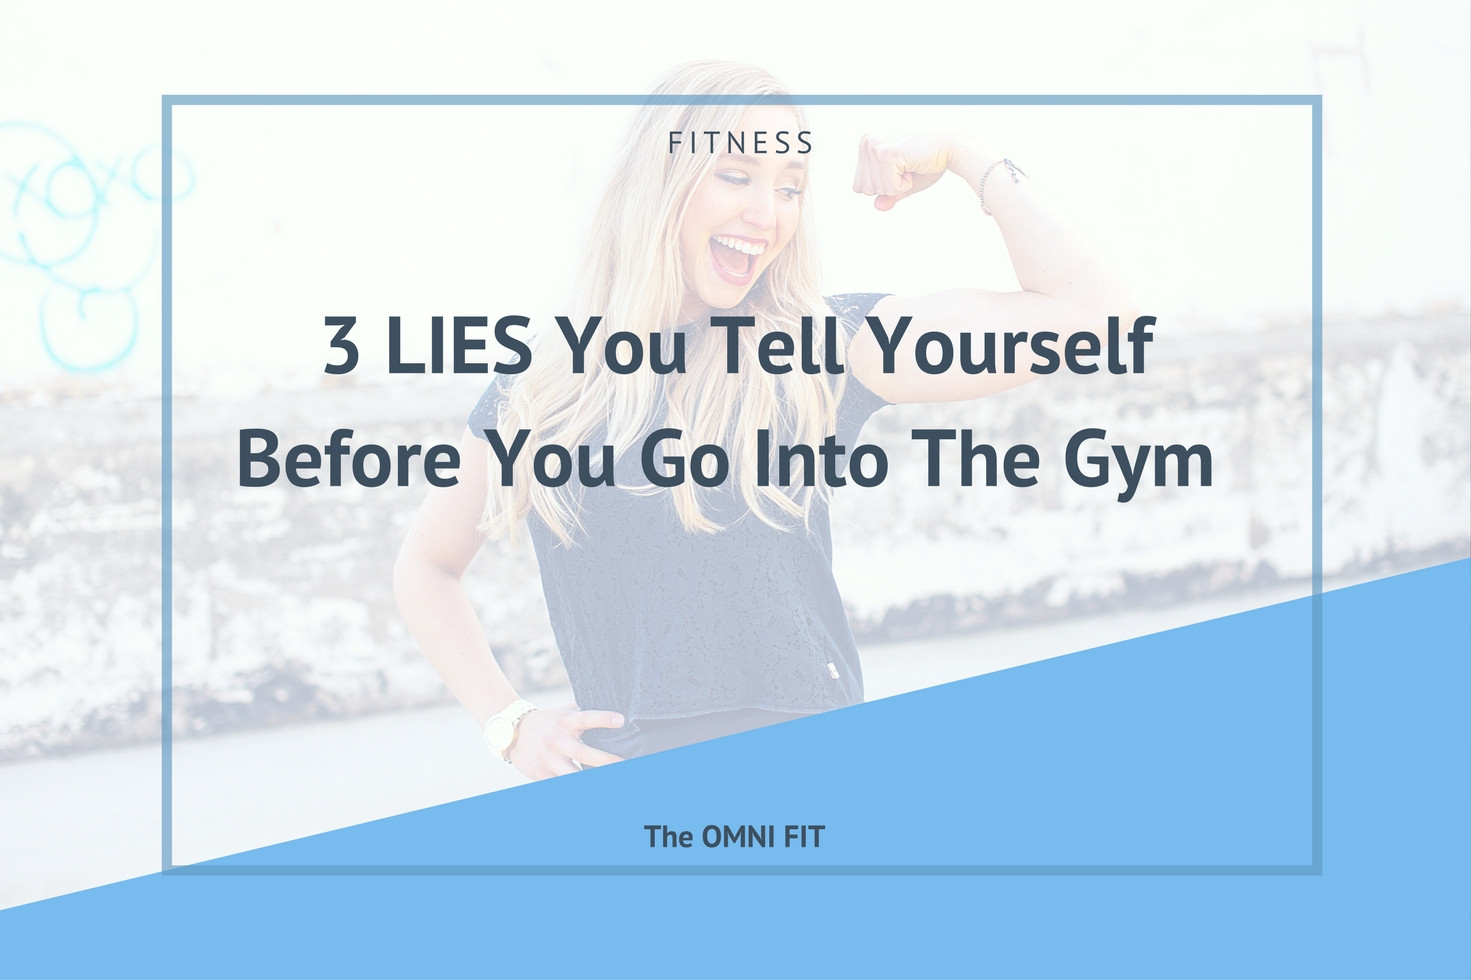 3 Lies You Tell Yourself Before You Go To The Gym